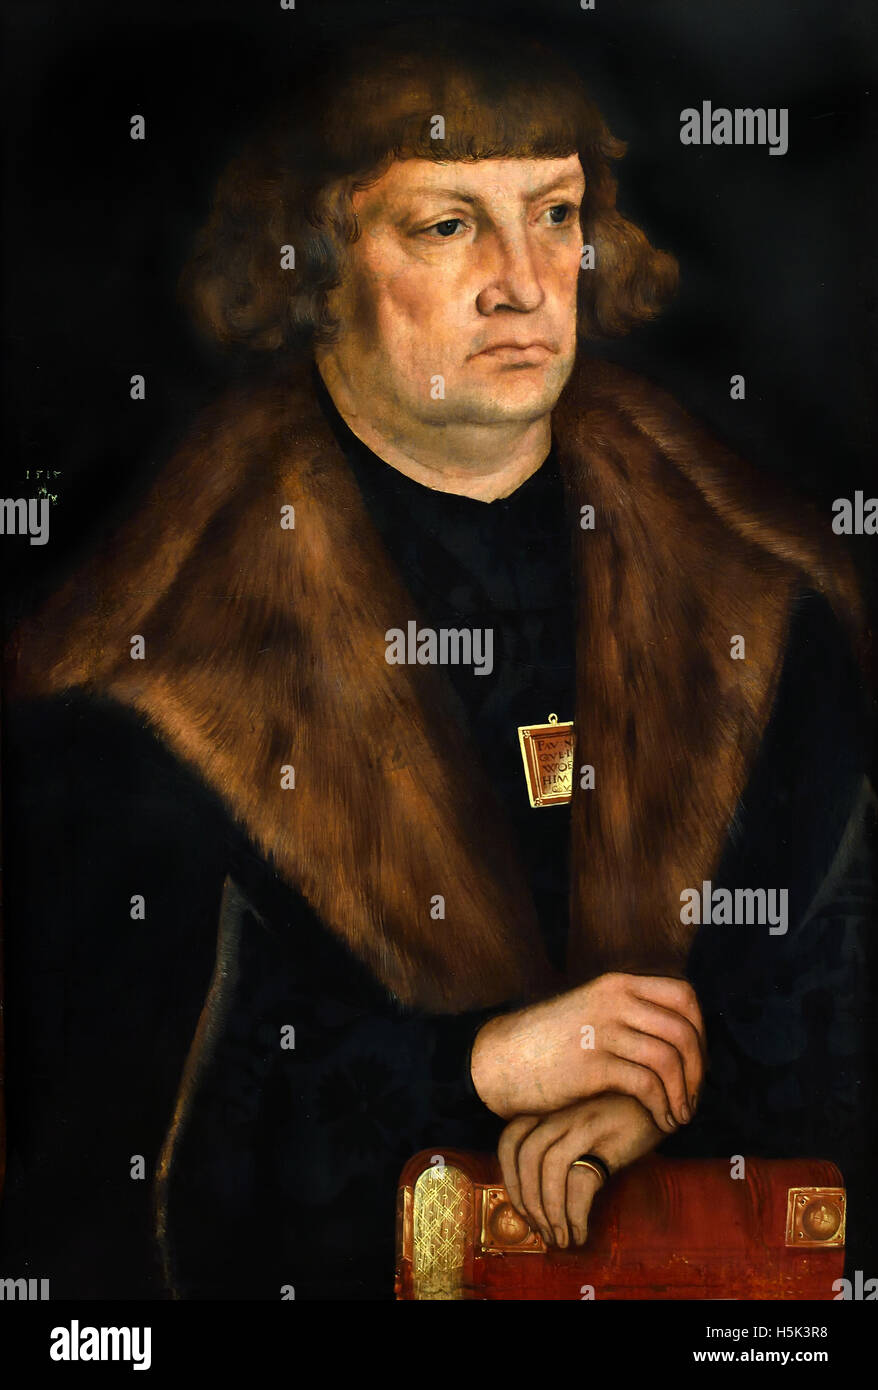 Der Jurist Leonhard Badehorn 1510 -1587 Lucas Cranach the younger 1513-1586 German Germany - Stock Image